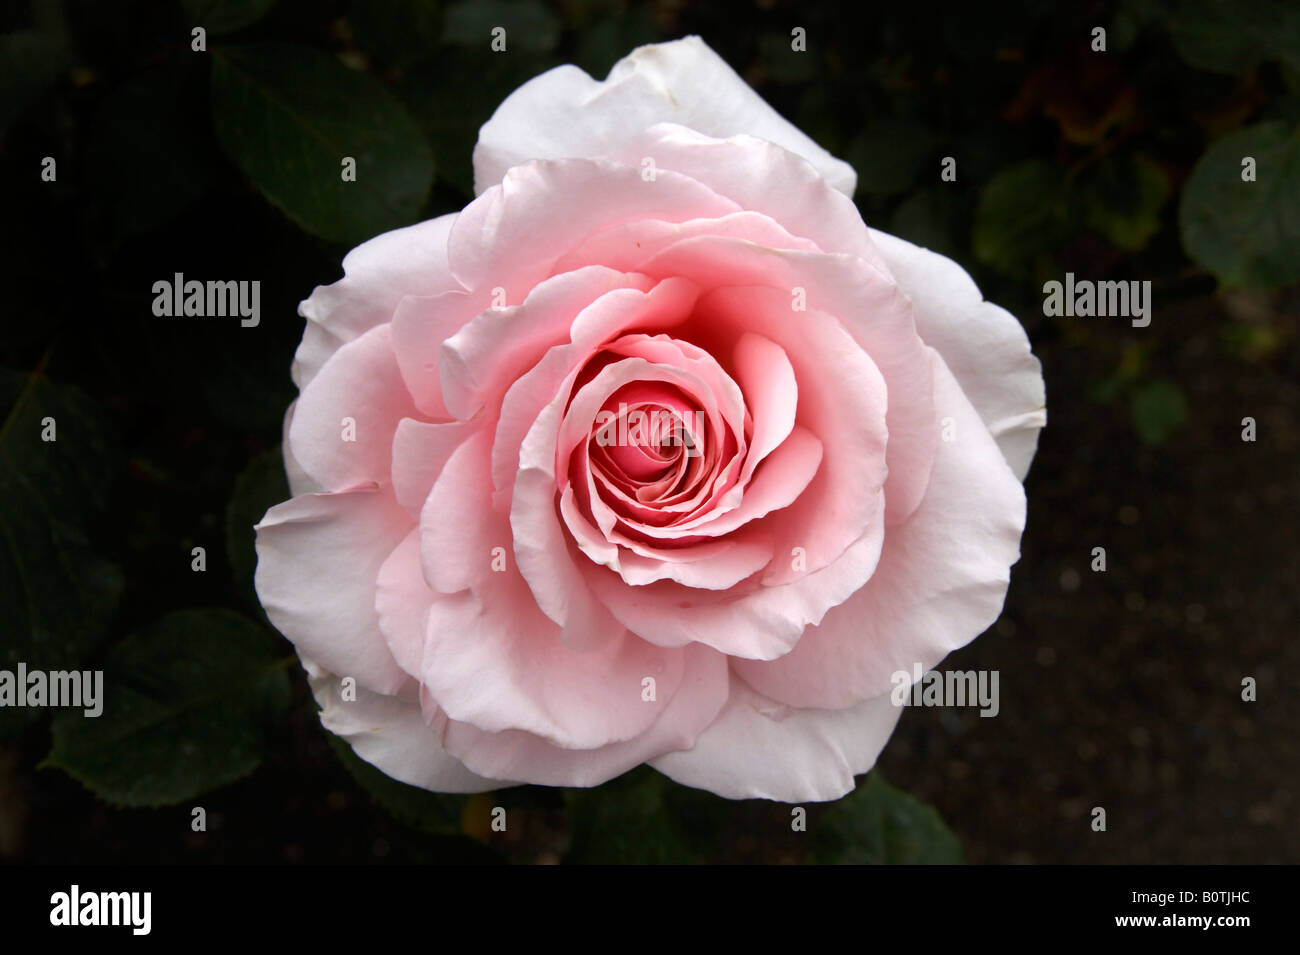 Savoy Hotel rose in Regent's Park, London - Stock Image